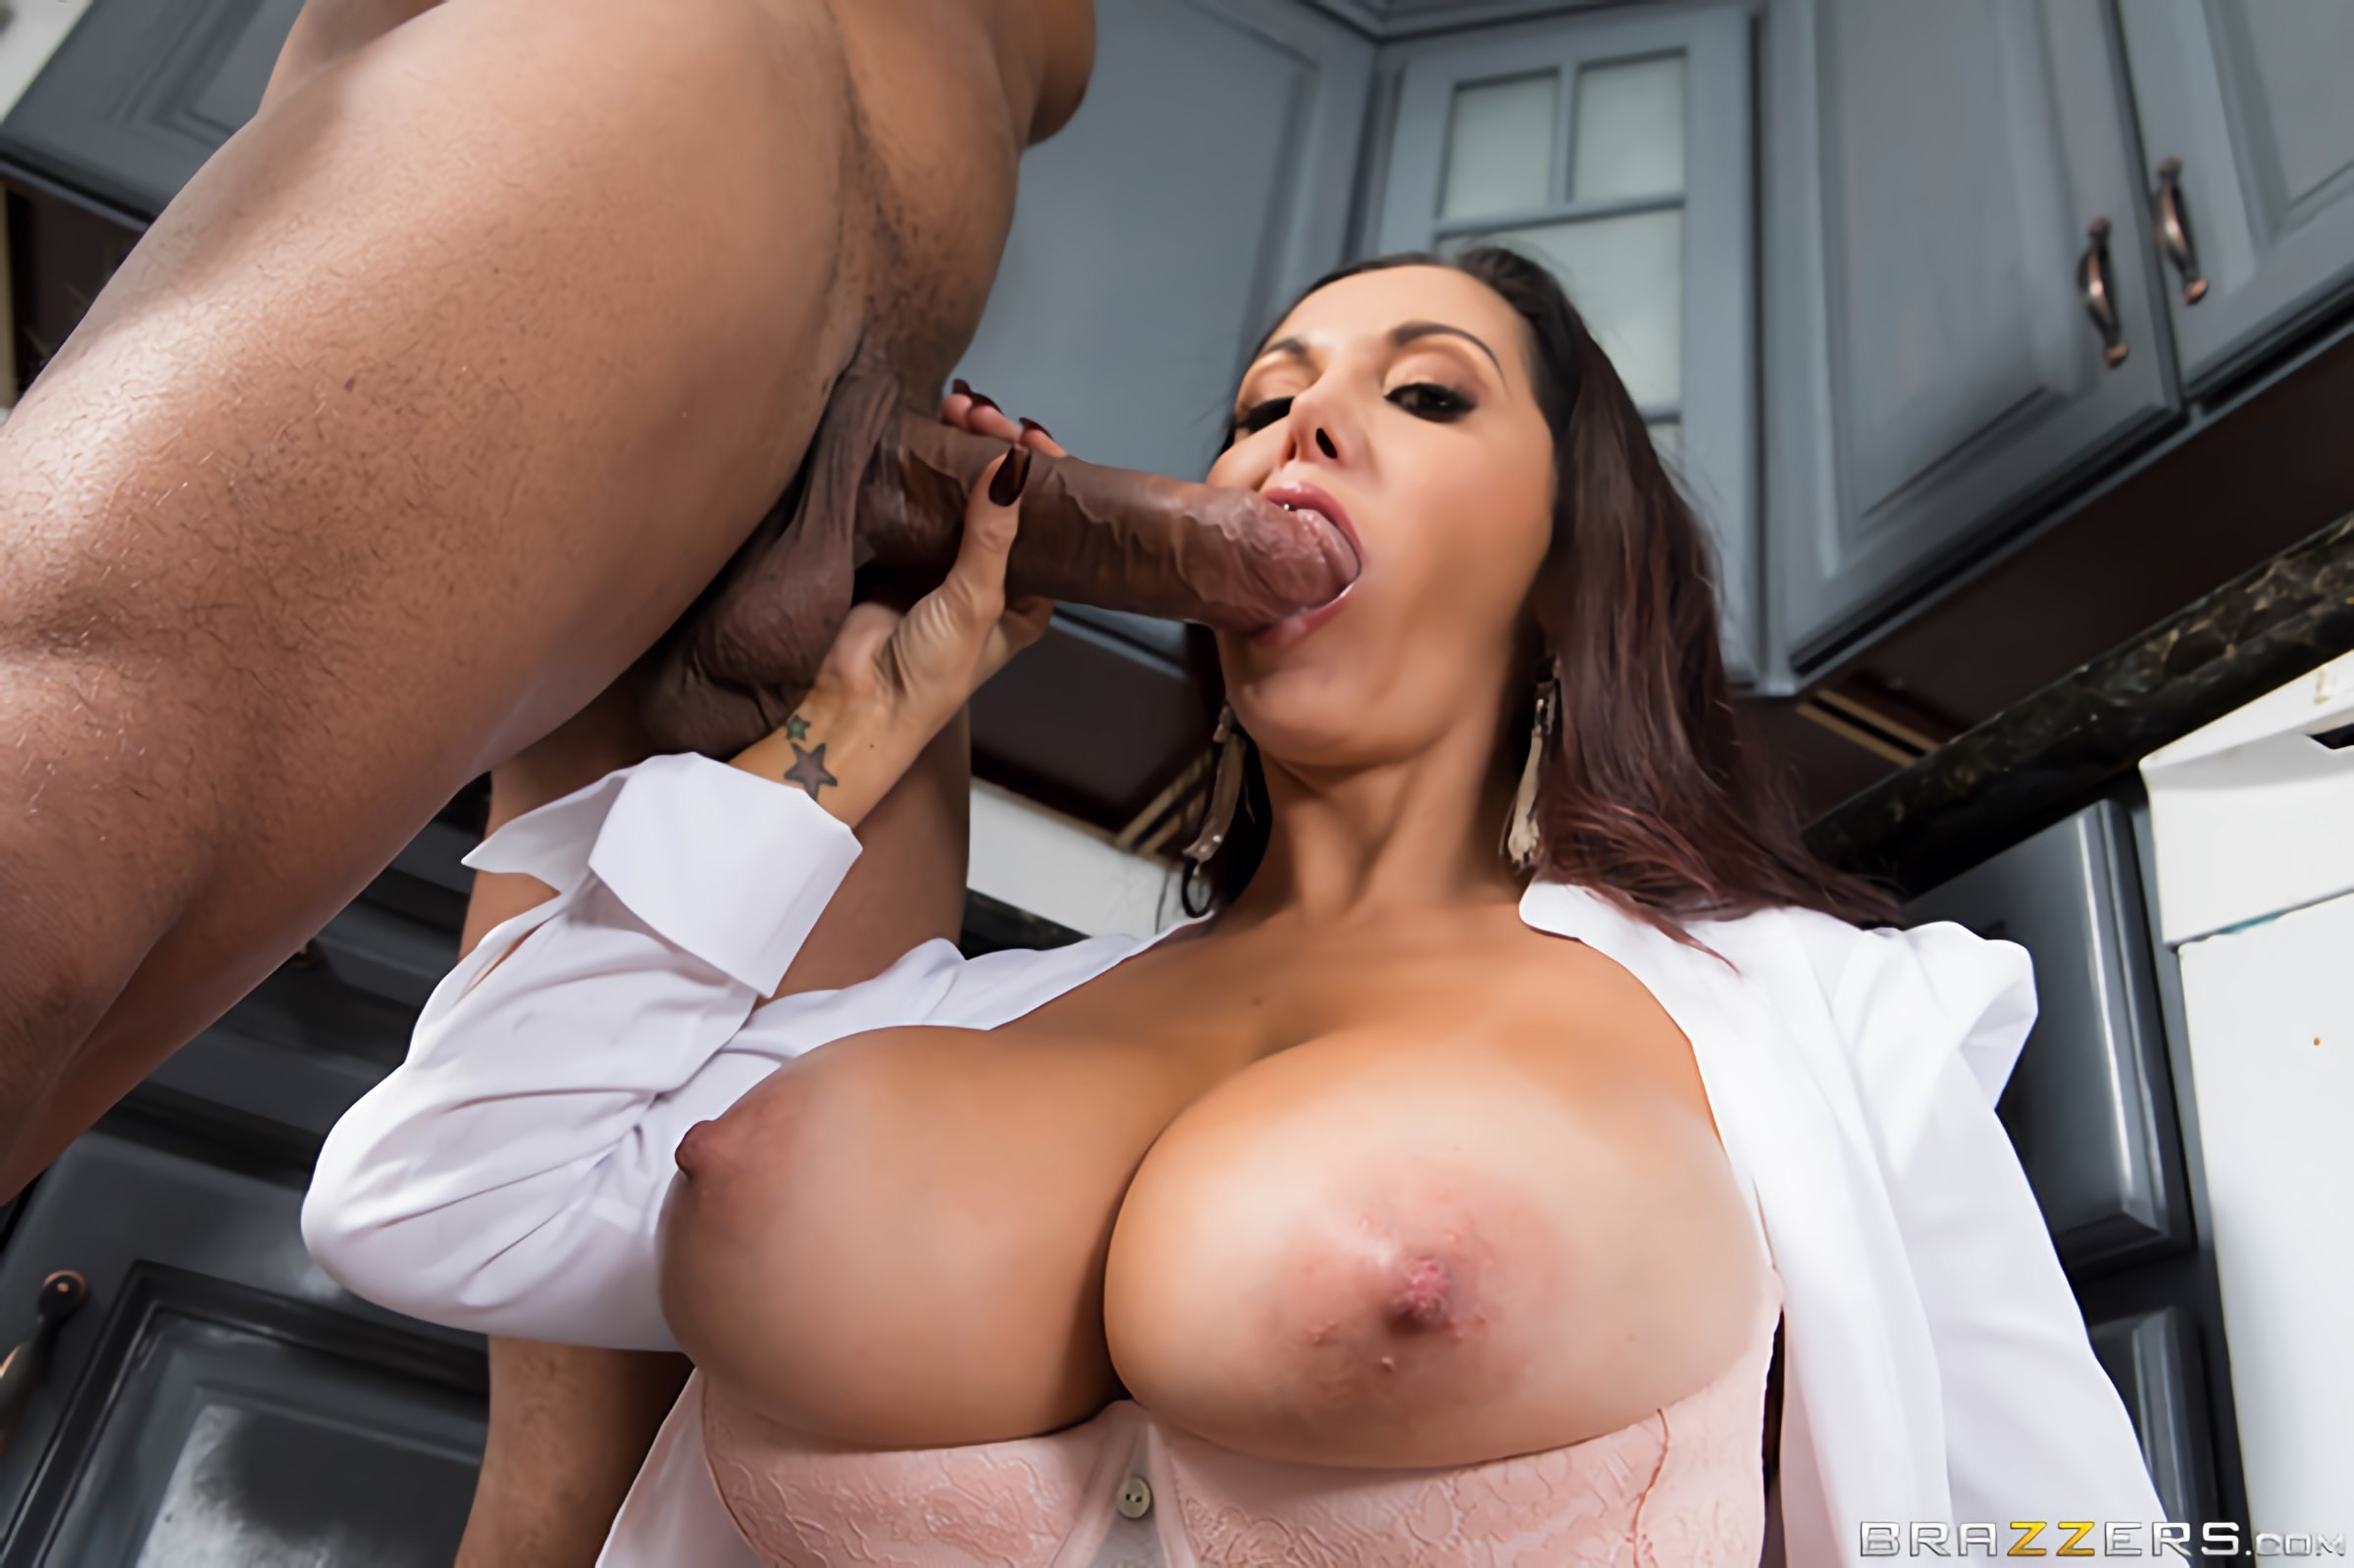 Brazzers 'One Strict Mama' starring Ava Addams (photo 2)